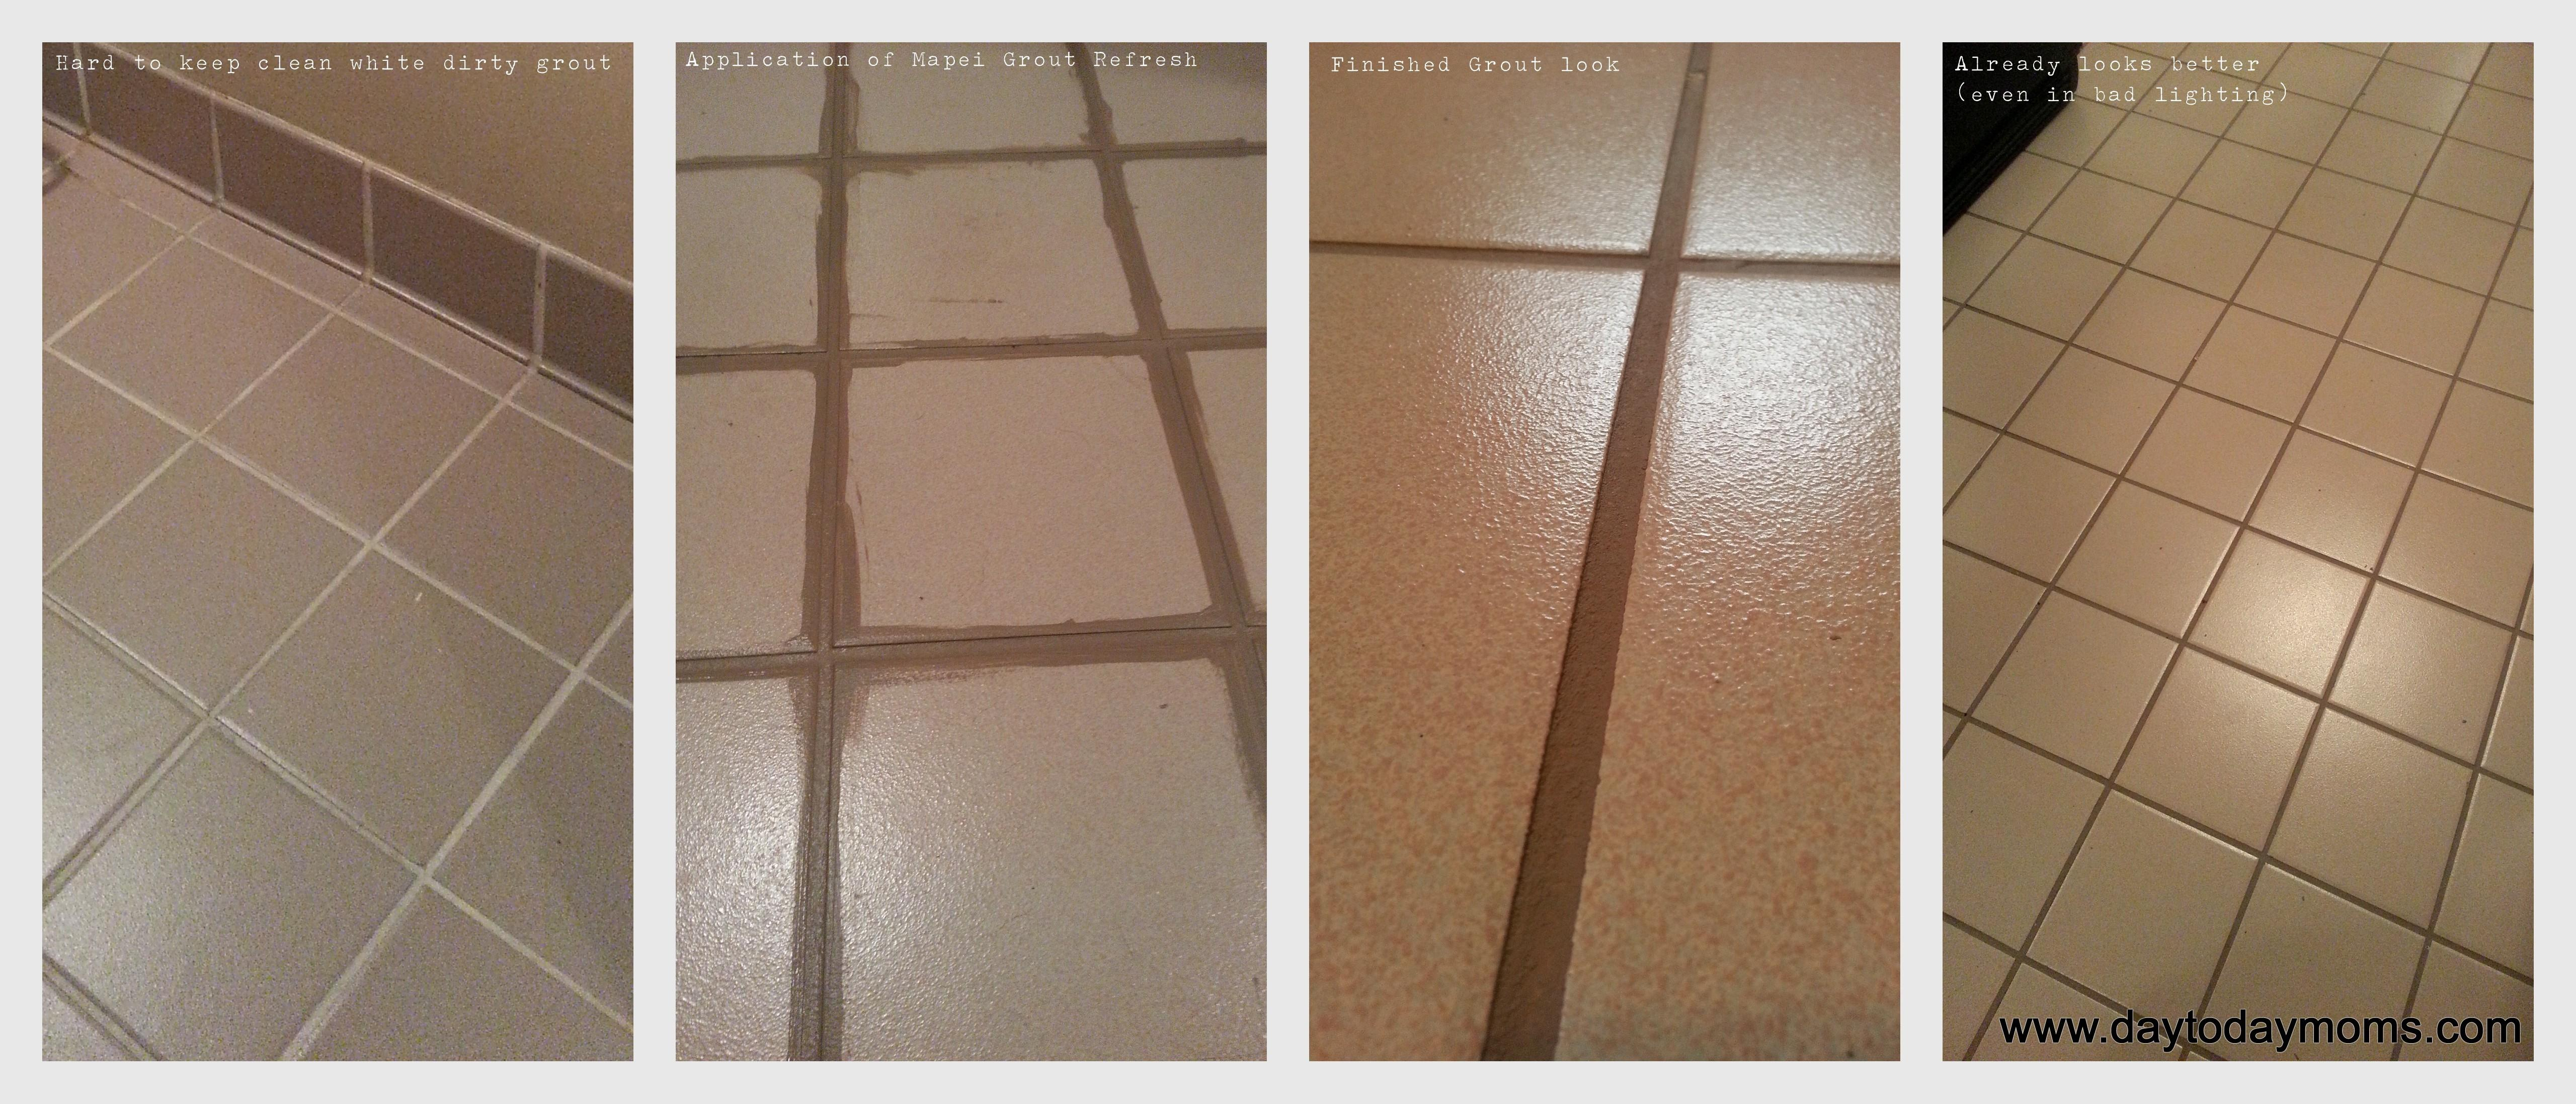 Recoloring Grout Made Easy Day Moms